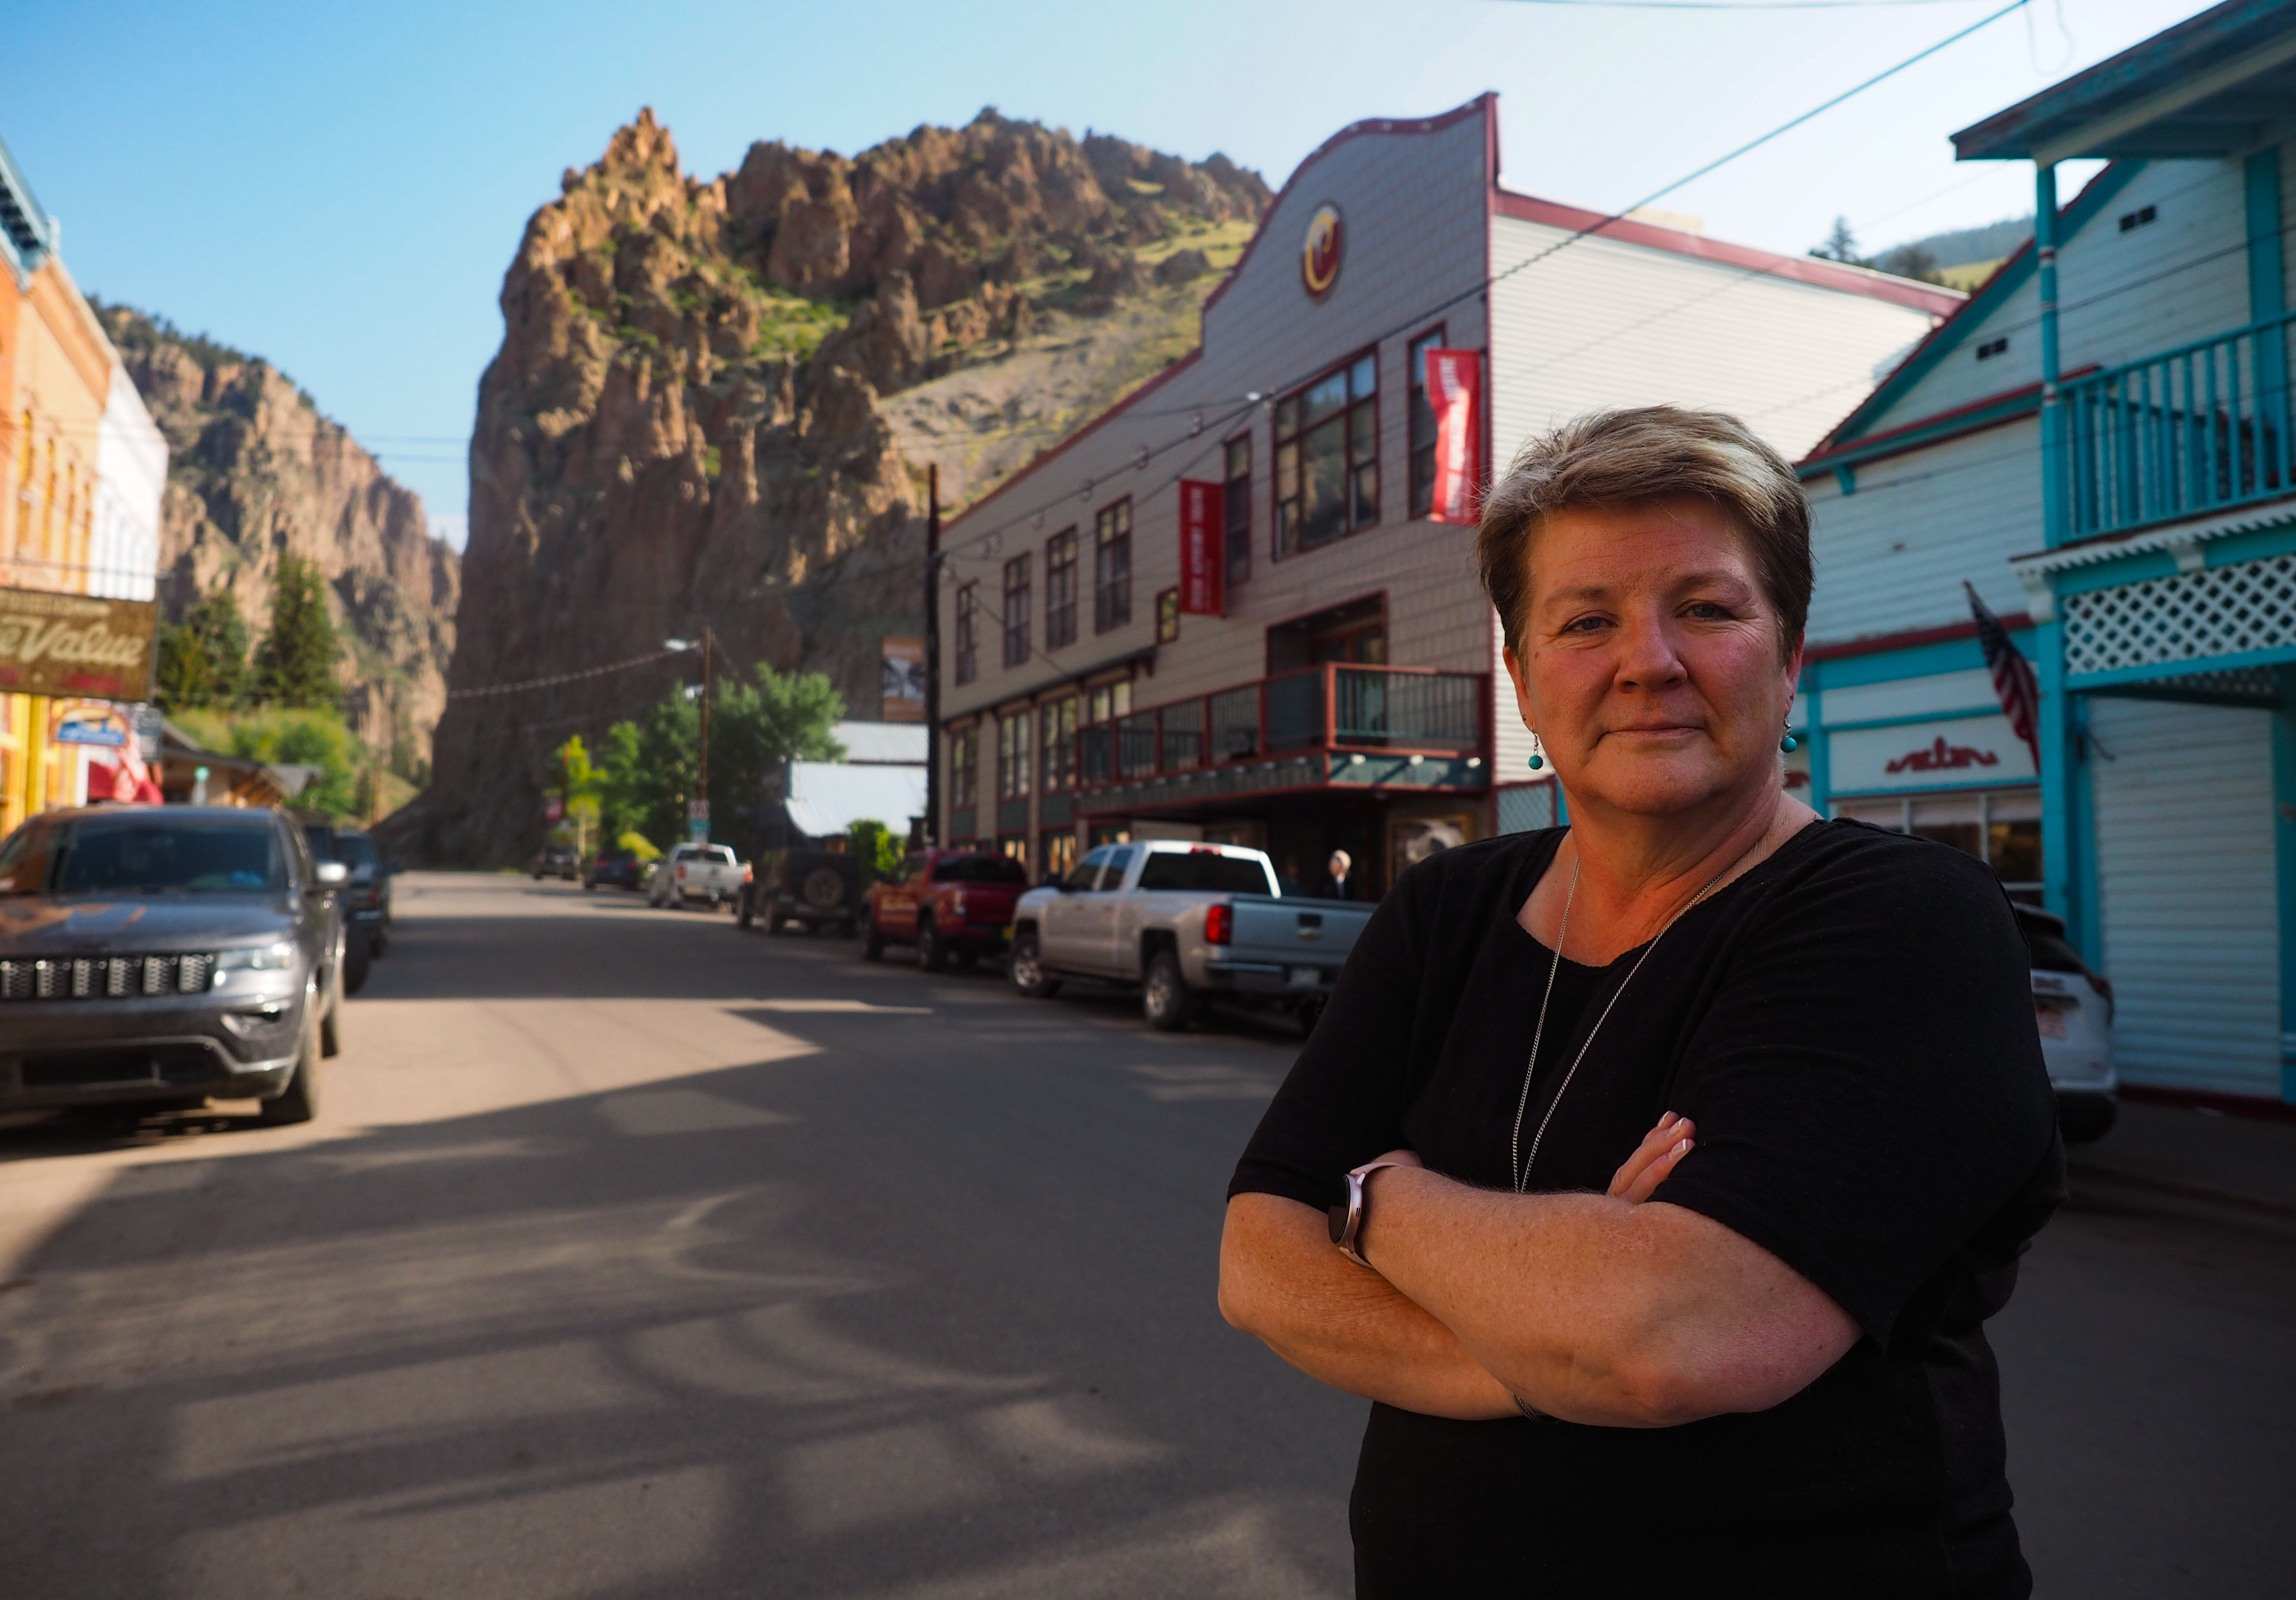 Mineral County administrator Janelle Kukuk on the mainstreet of Creede August 18,2021. (Dean Krakel, Special to The Colorado Sun)